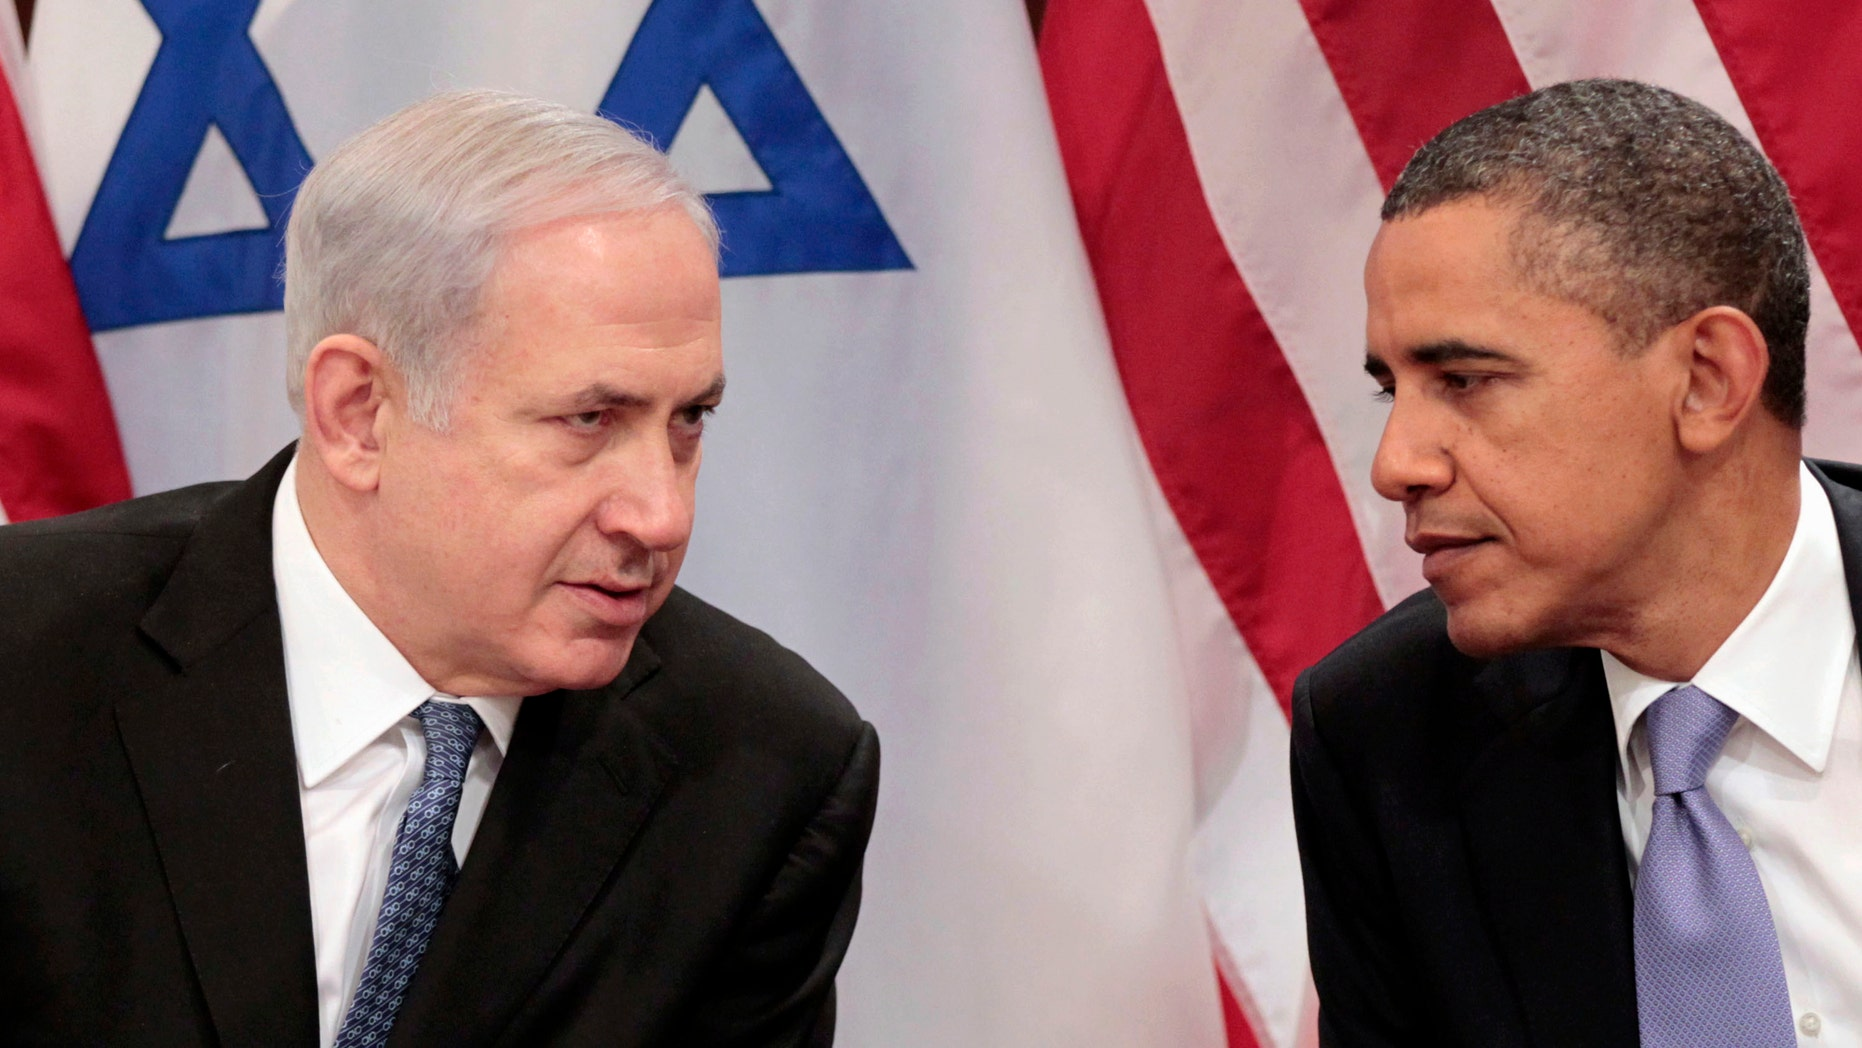 Obama and Netanyahu have a frosty relationship, but meddling in each other's elections doesn't seem to work. (AP)